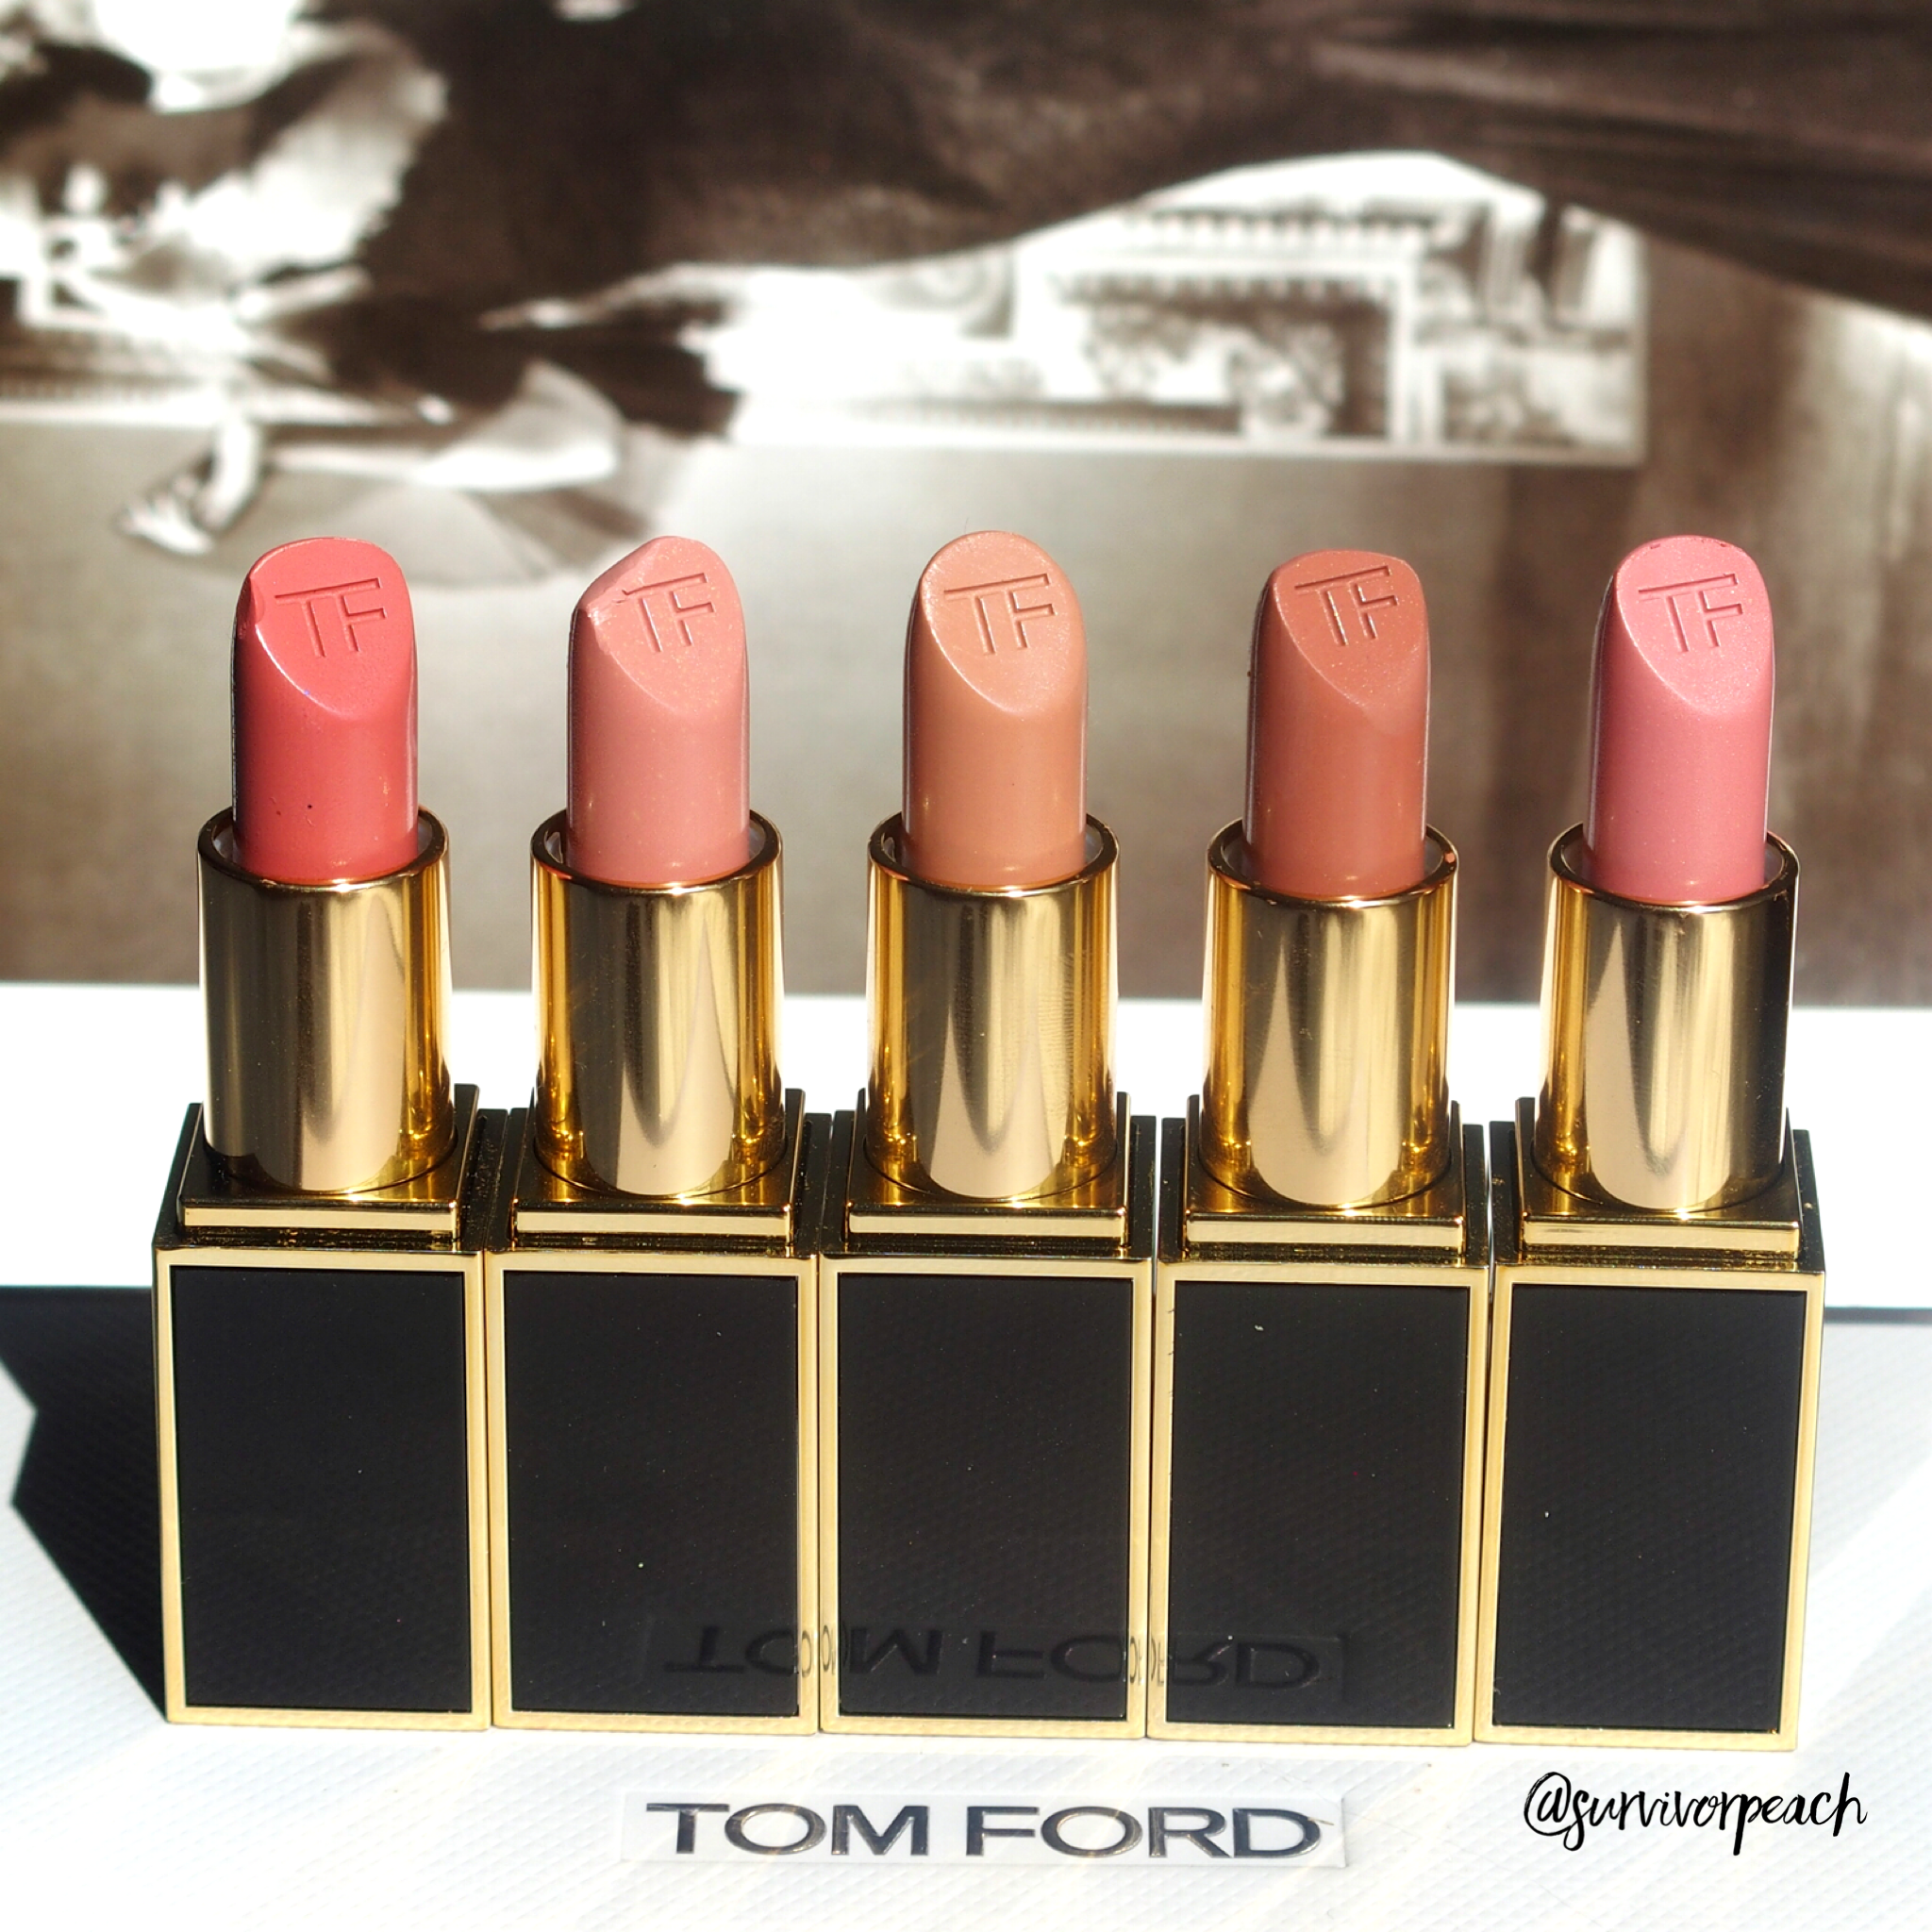 Tom Ford Lipsticks in Age of Consent, Spiced Honey, Erogenous, Autoerotique, Paper Doll